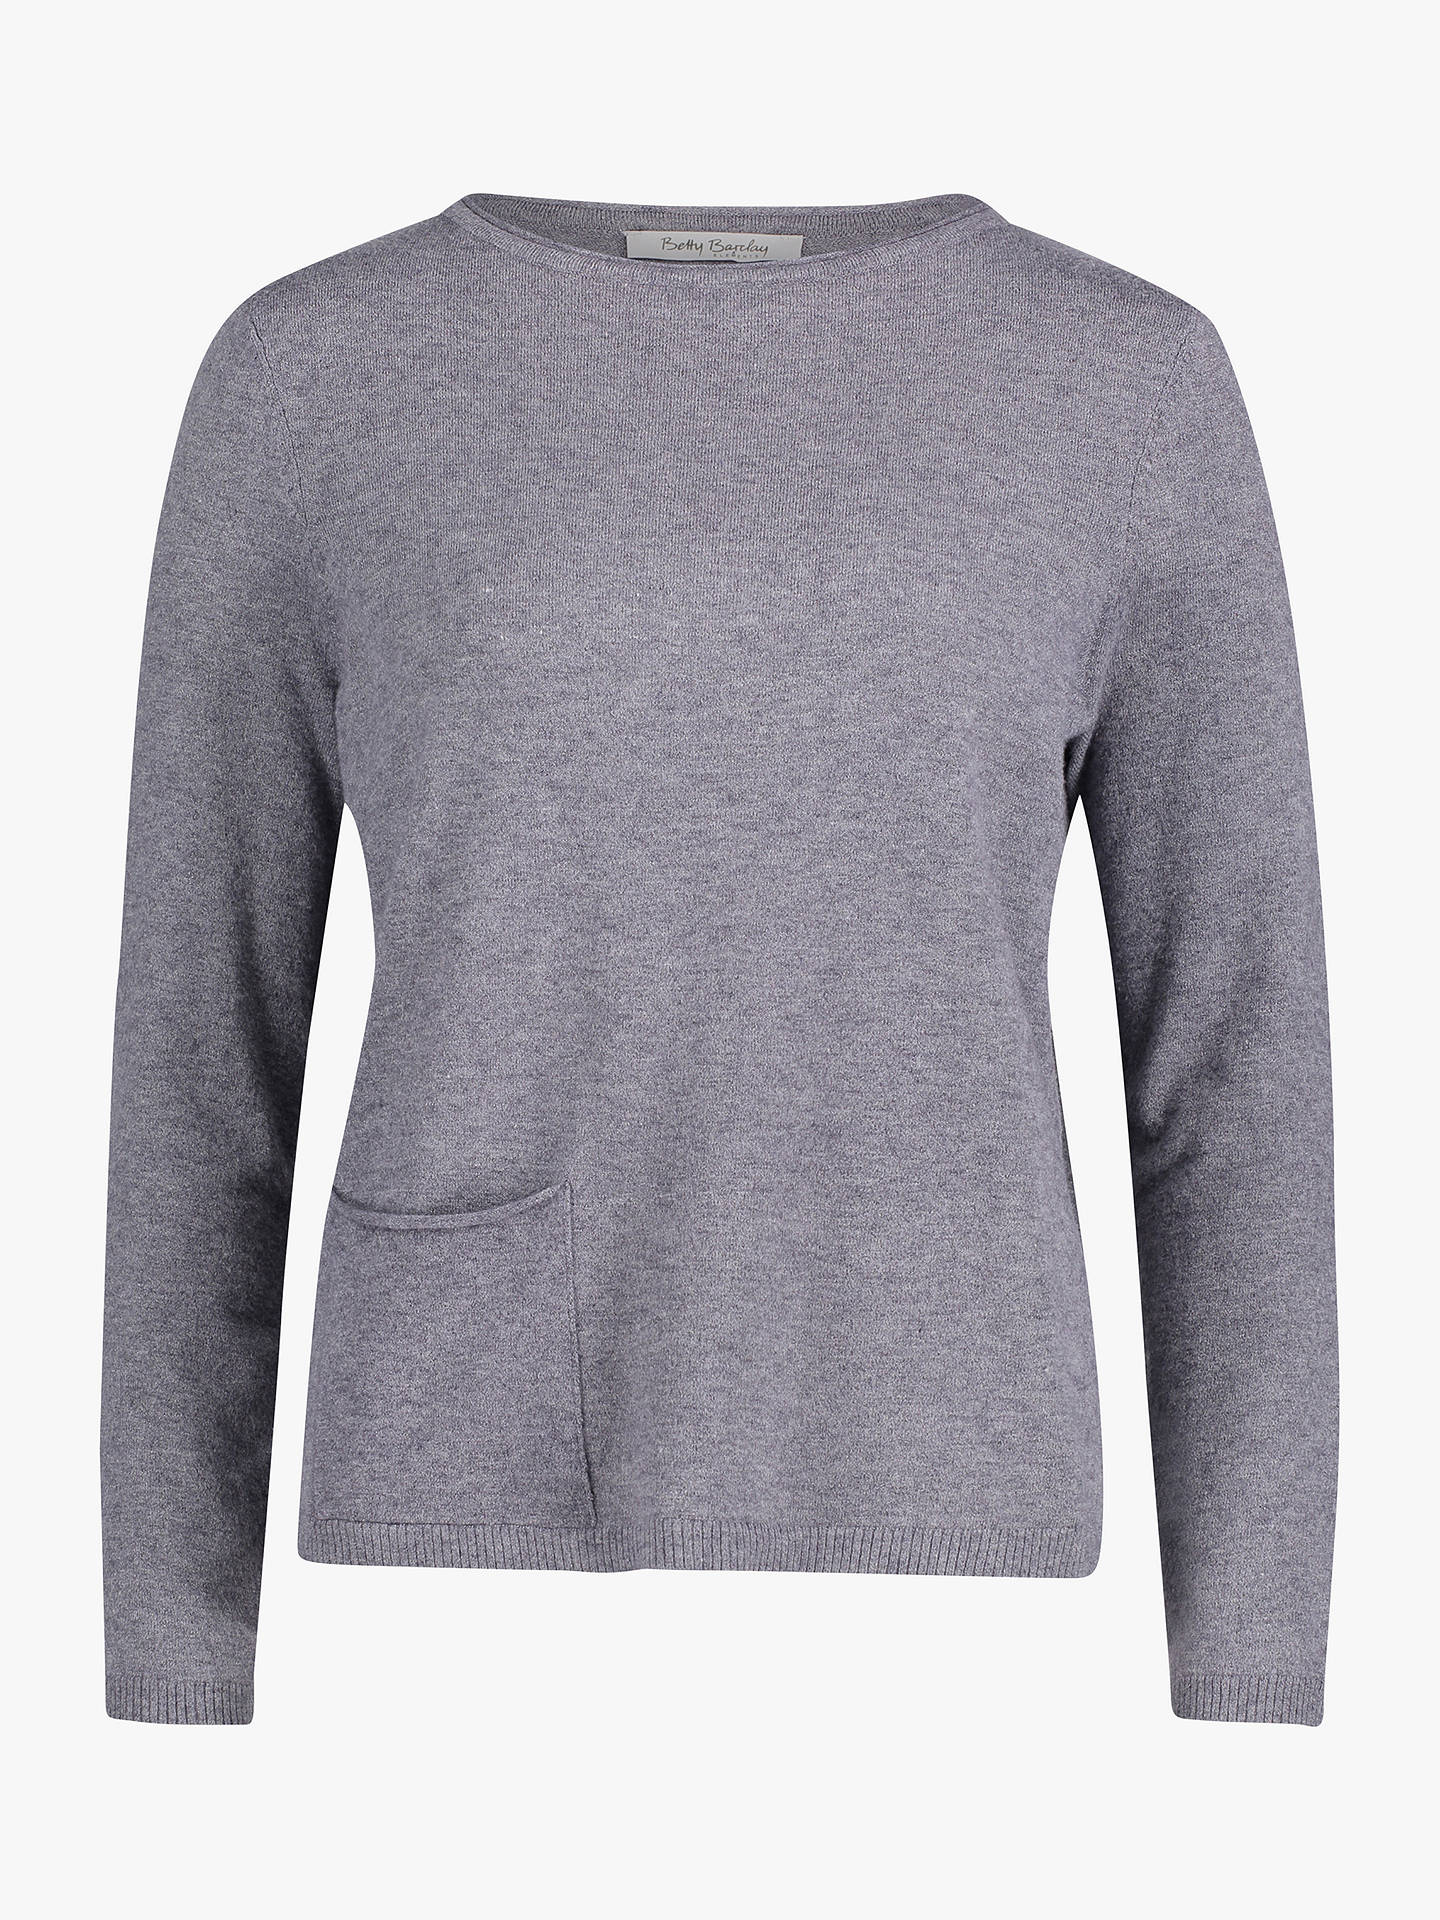 BuyBetty Barclay Fine Knit Jumper, Mid Grey Melange, 10 Online at johnlewis.com